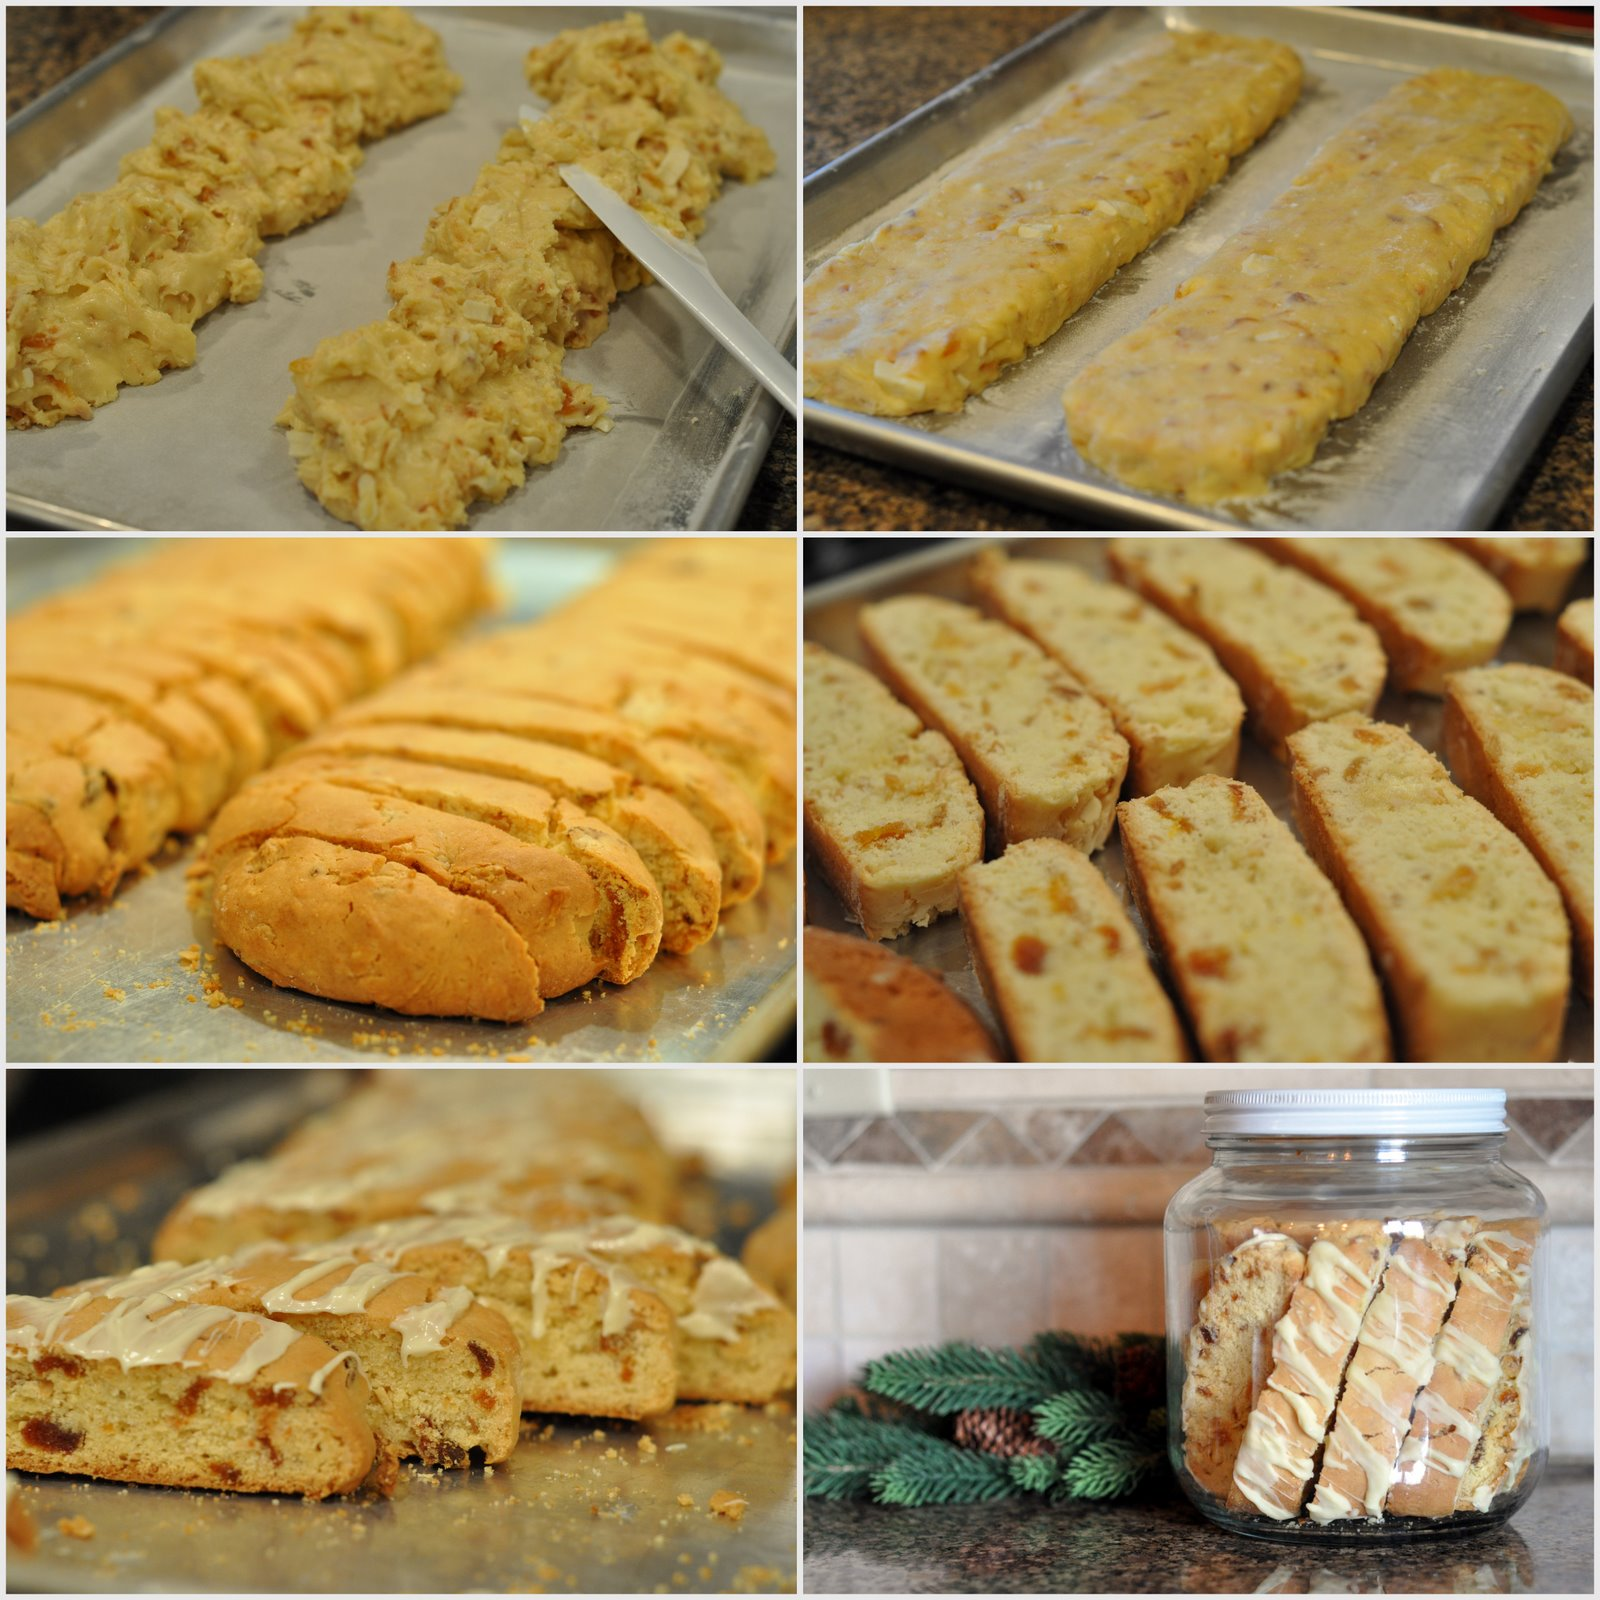 Mennonite Girls Can Cook: White Chocolate Apricot Biscotti